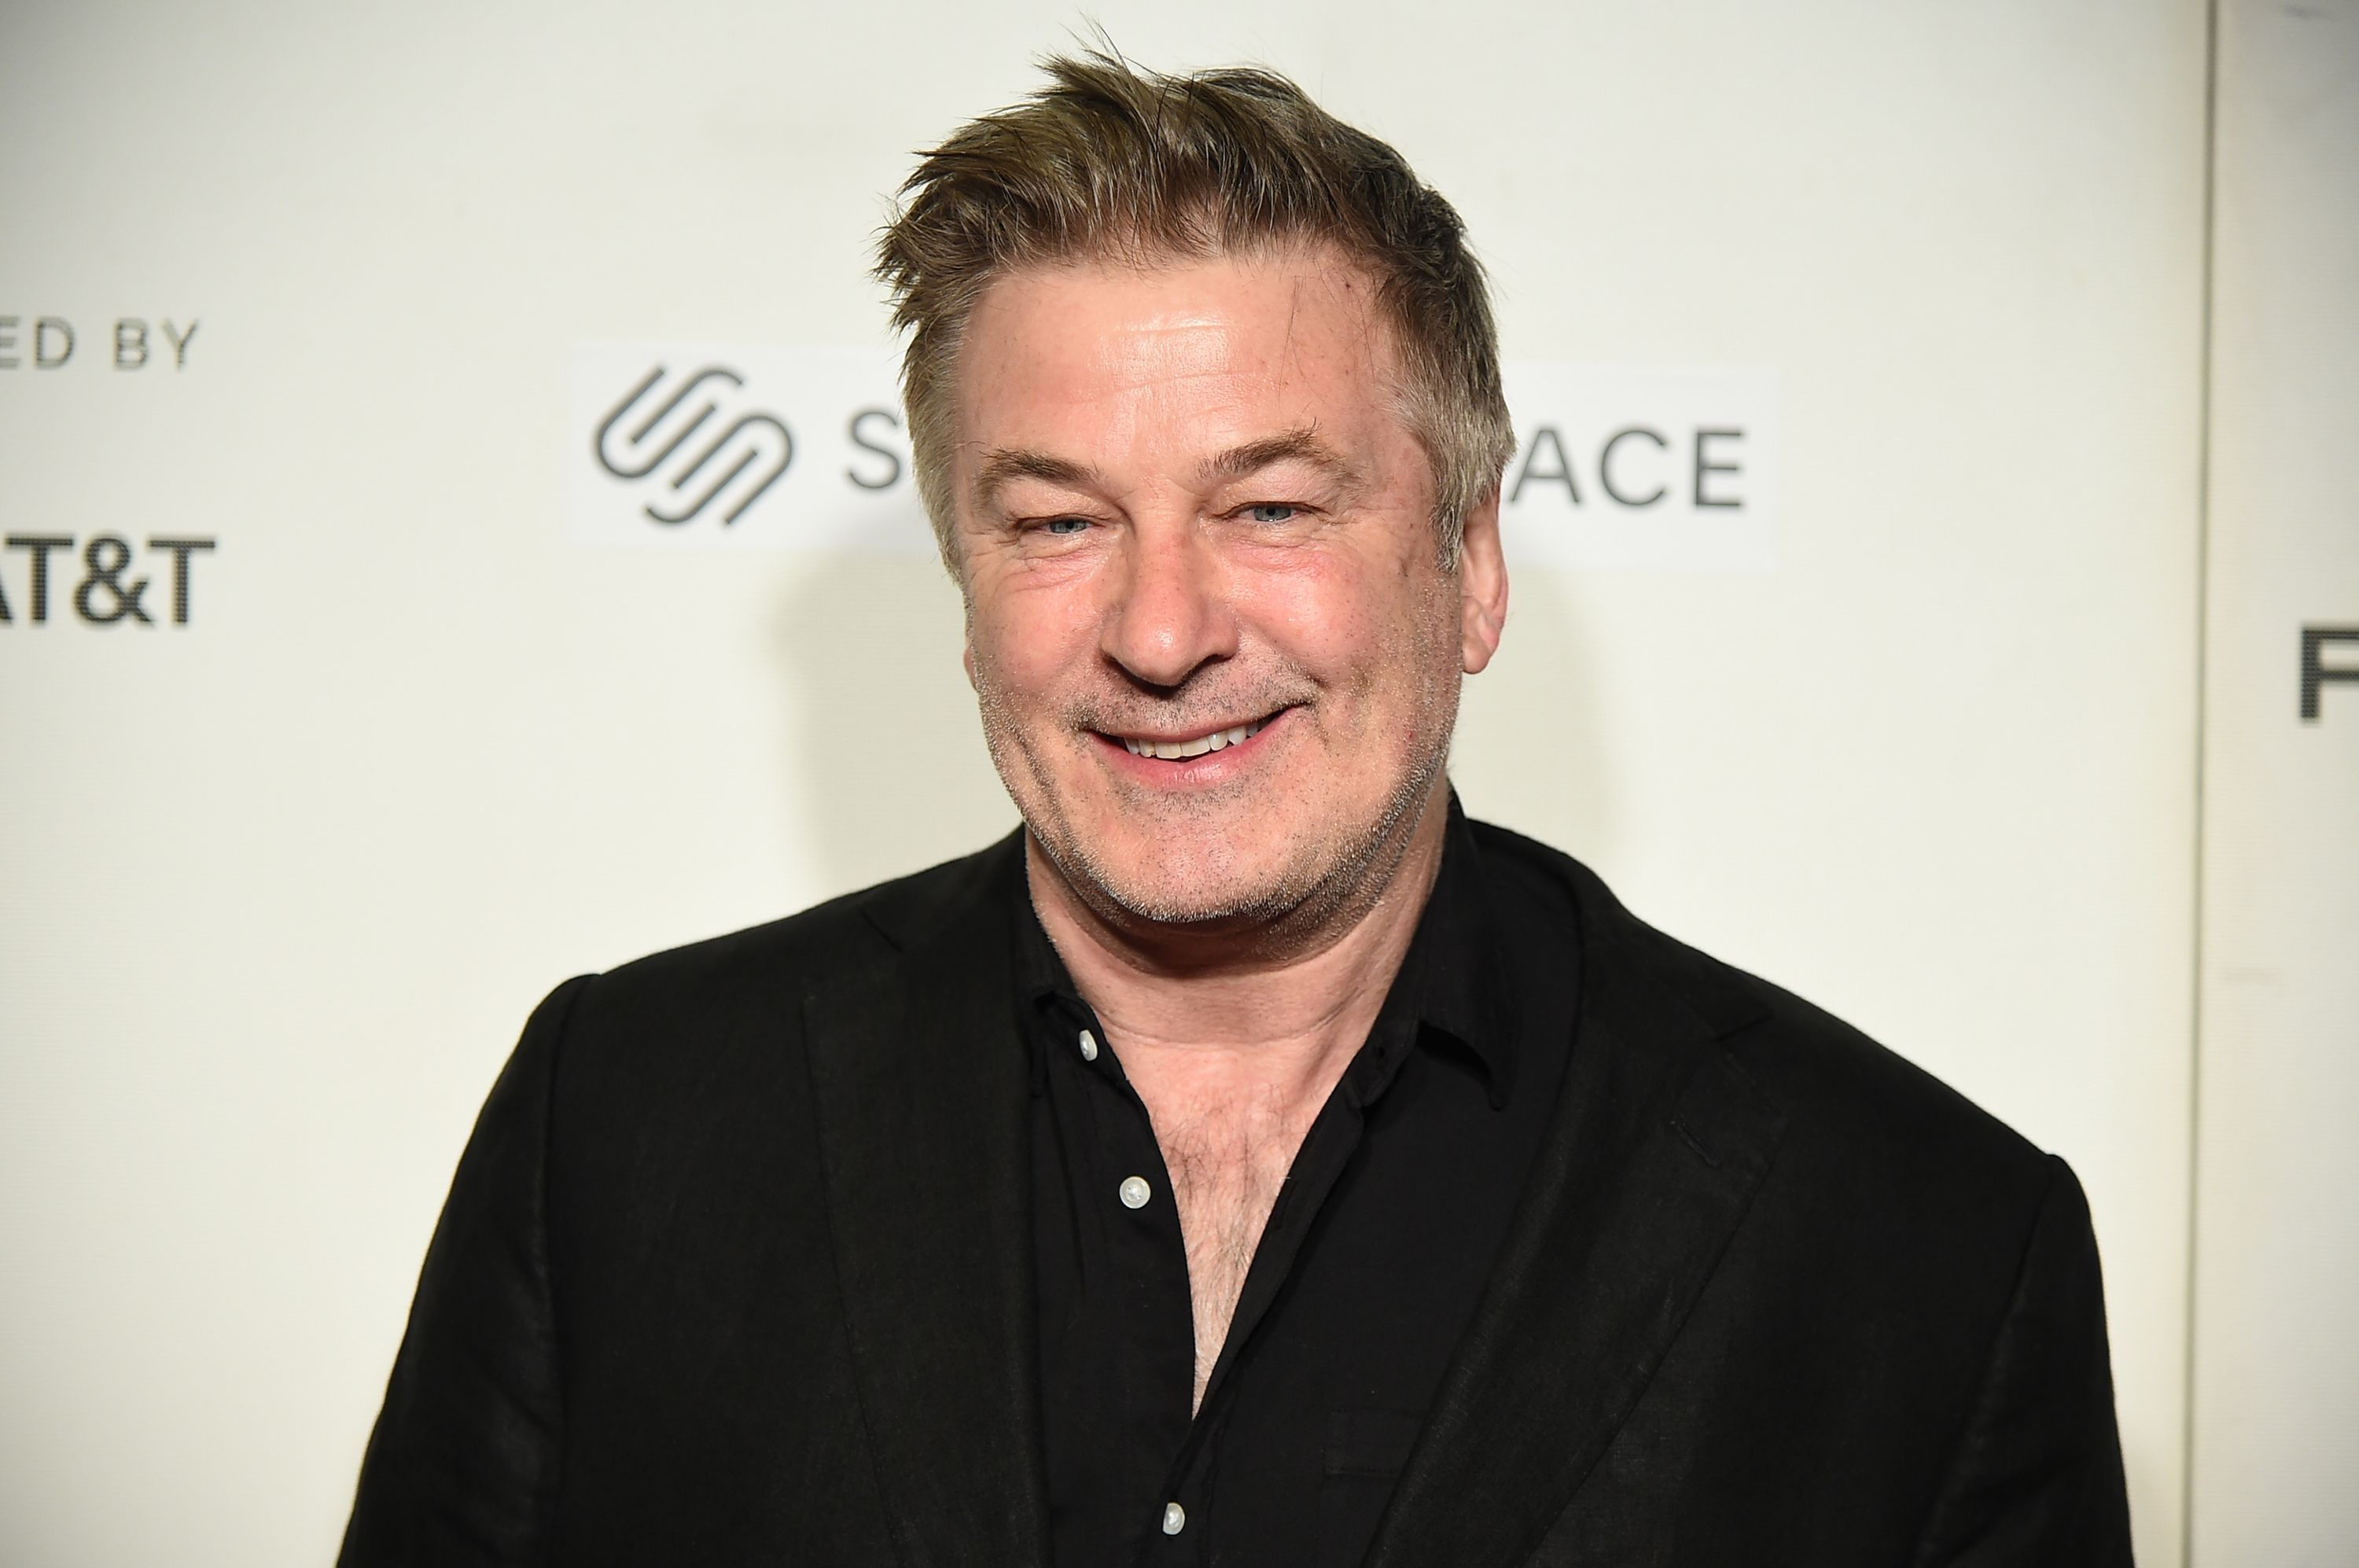 Alec Baldwin looks amazing in this black T-shirt and the smile on his face is gorgeous.